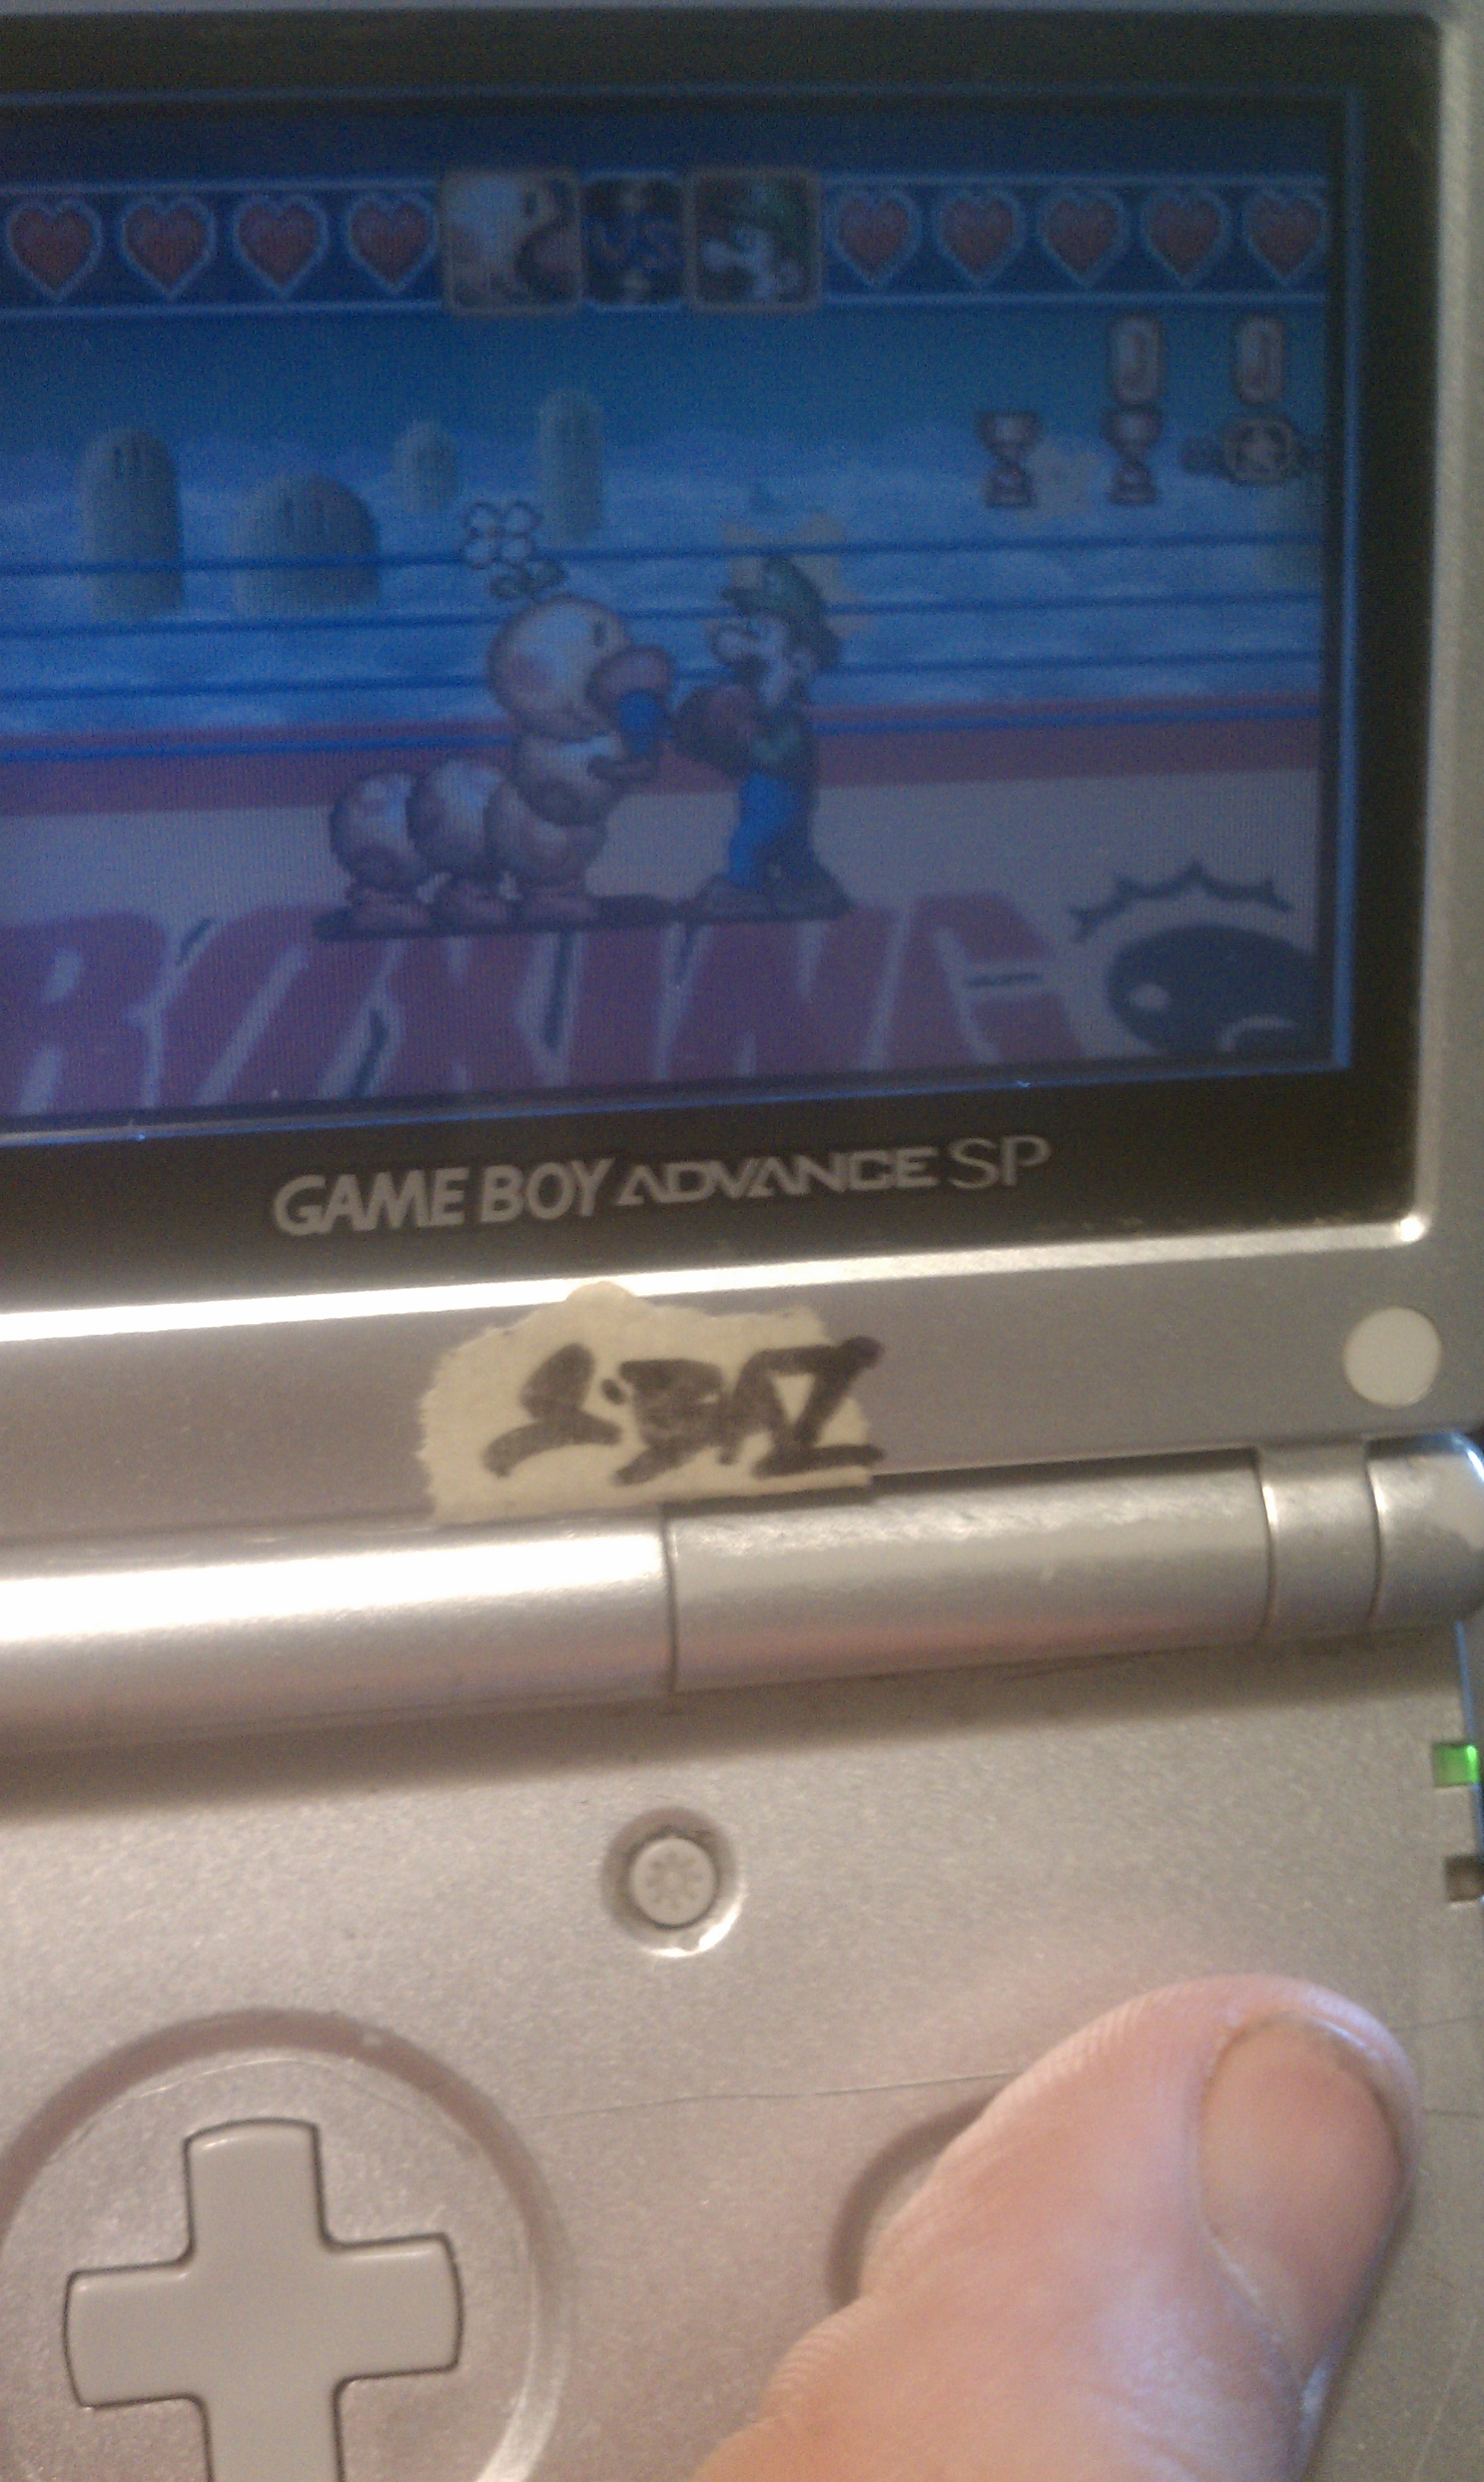 S.BAZ: Game & Watch Gallery 4: Boxing [Modern: 1P] (GBA) 72 points on 2019-11-20 05:05:14